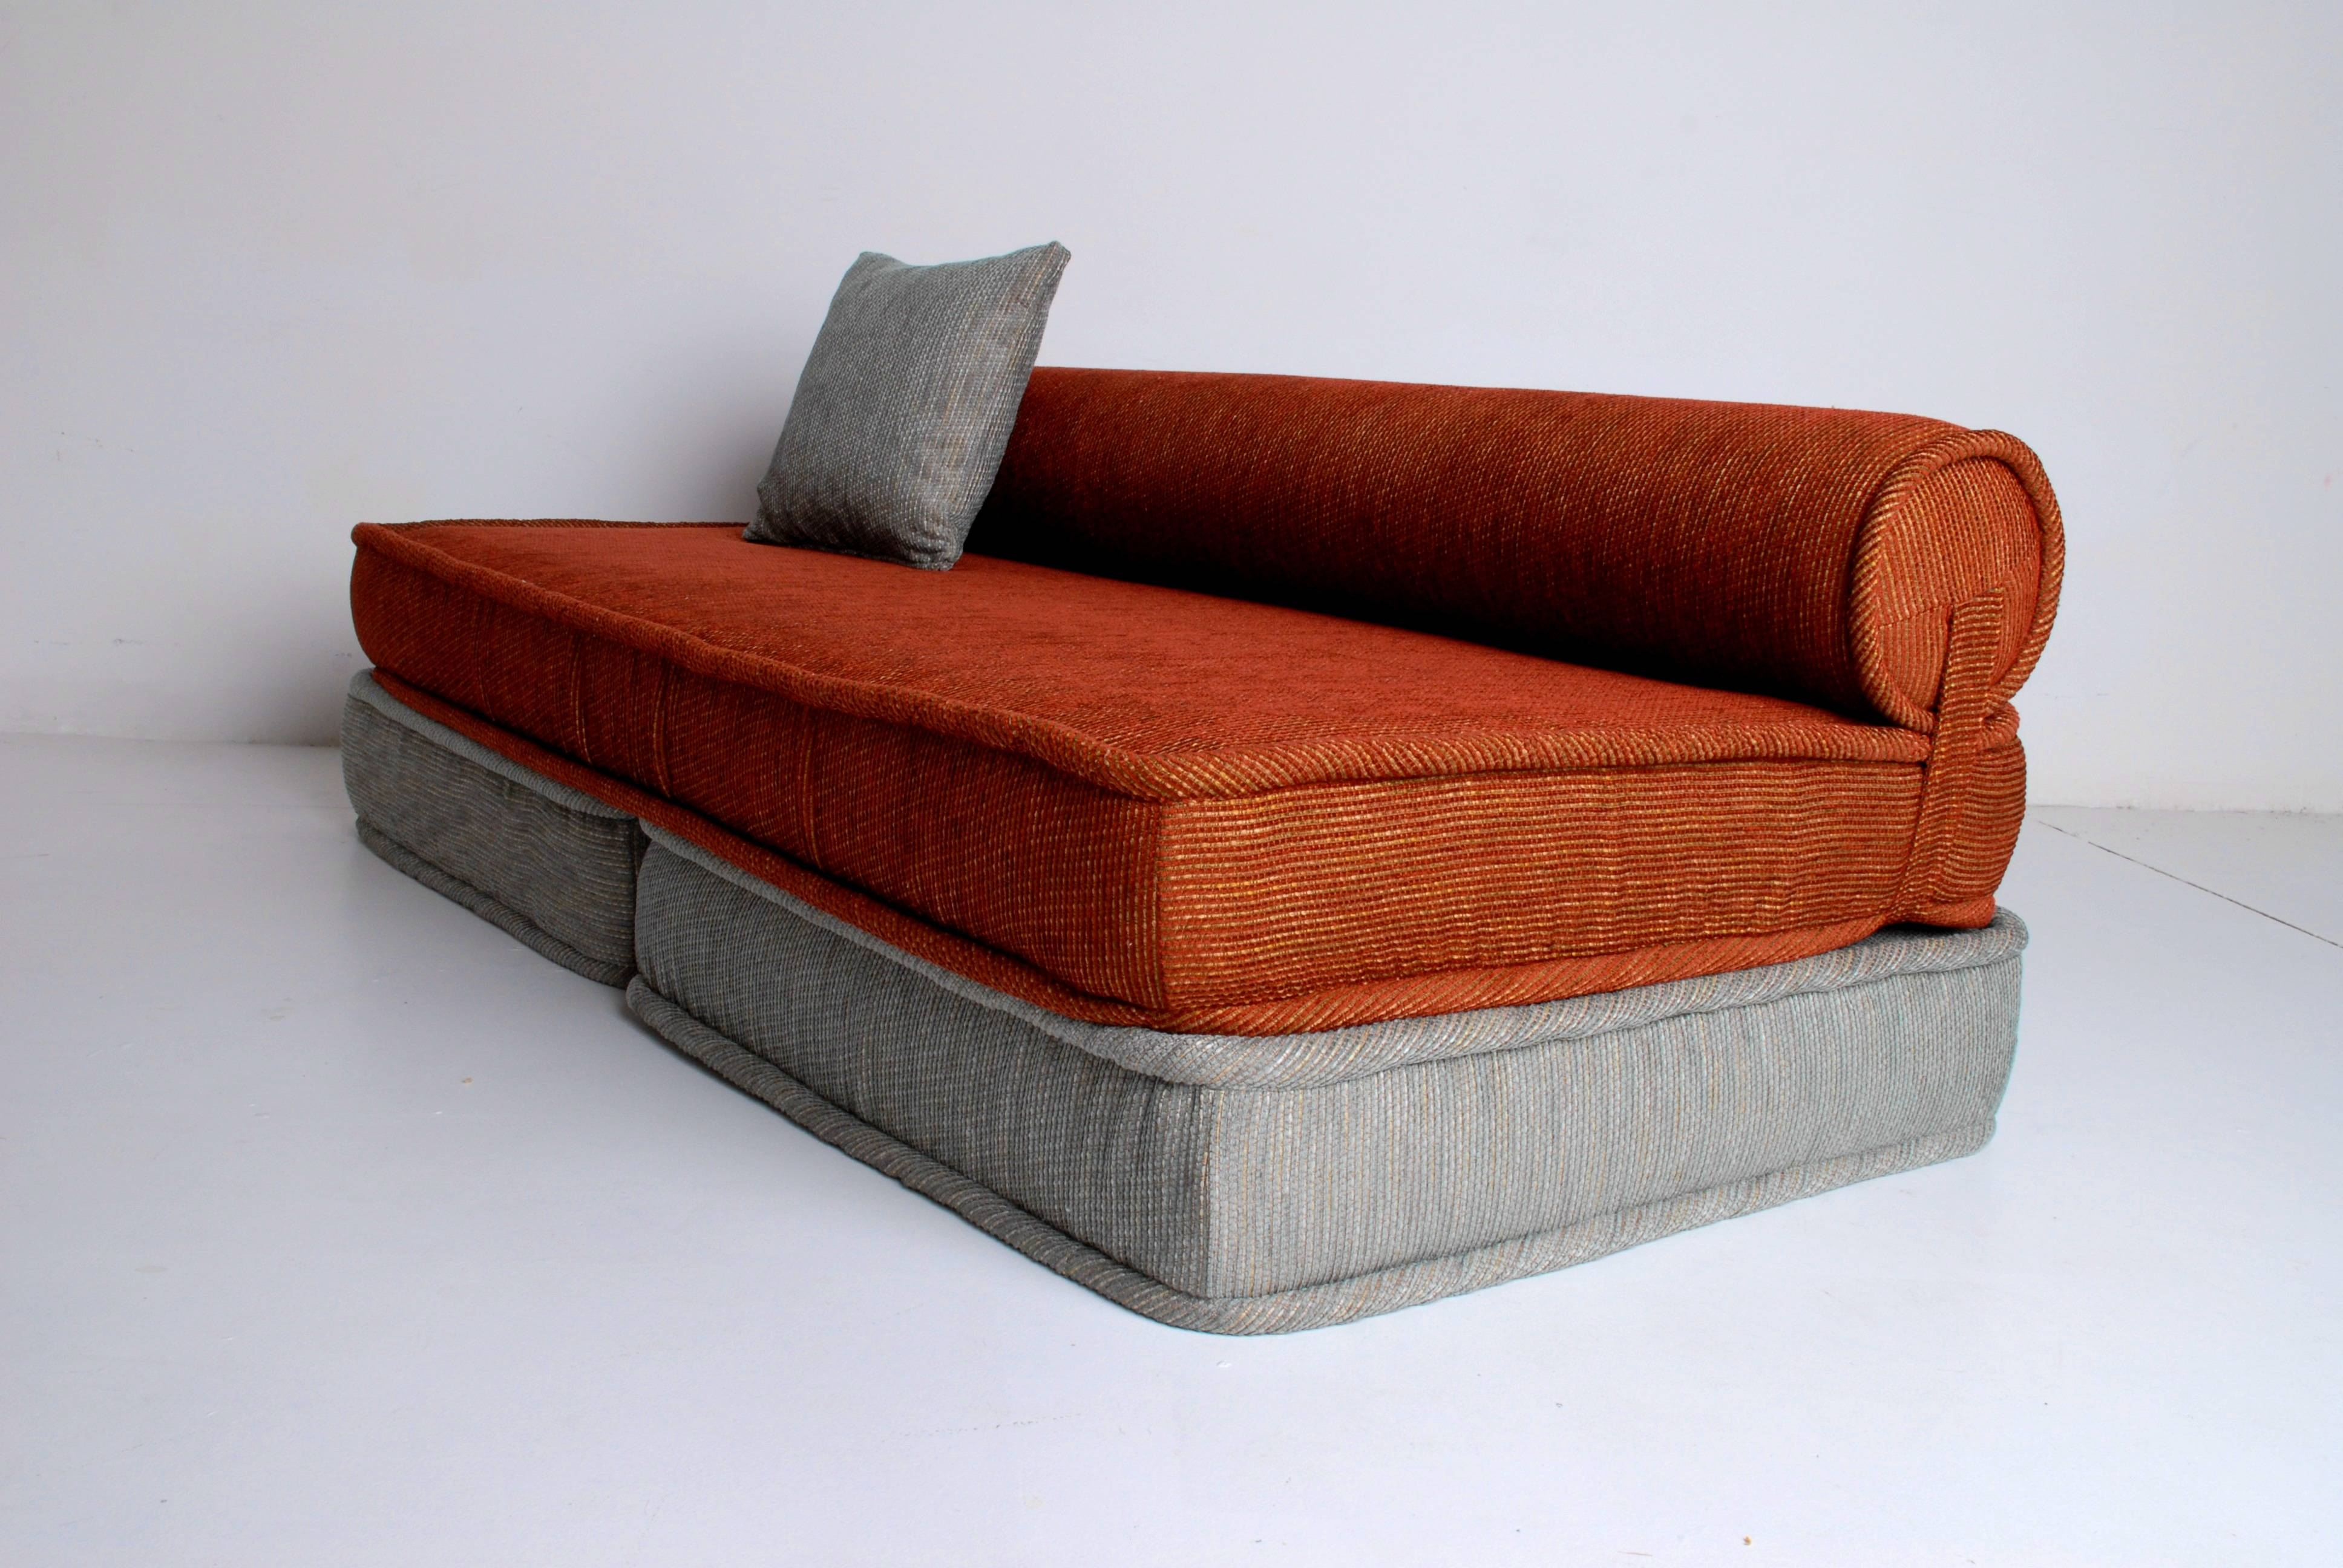 Bedroom : Breathtaking Comfortable Floor Couch For Sweet Home with regard to Comfortable Floor Seating (Image 3 of 30)